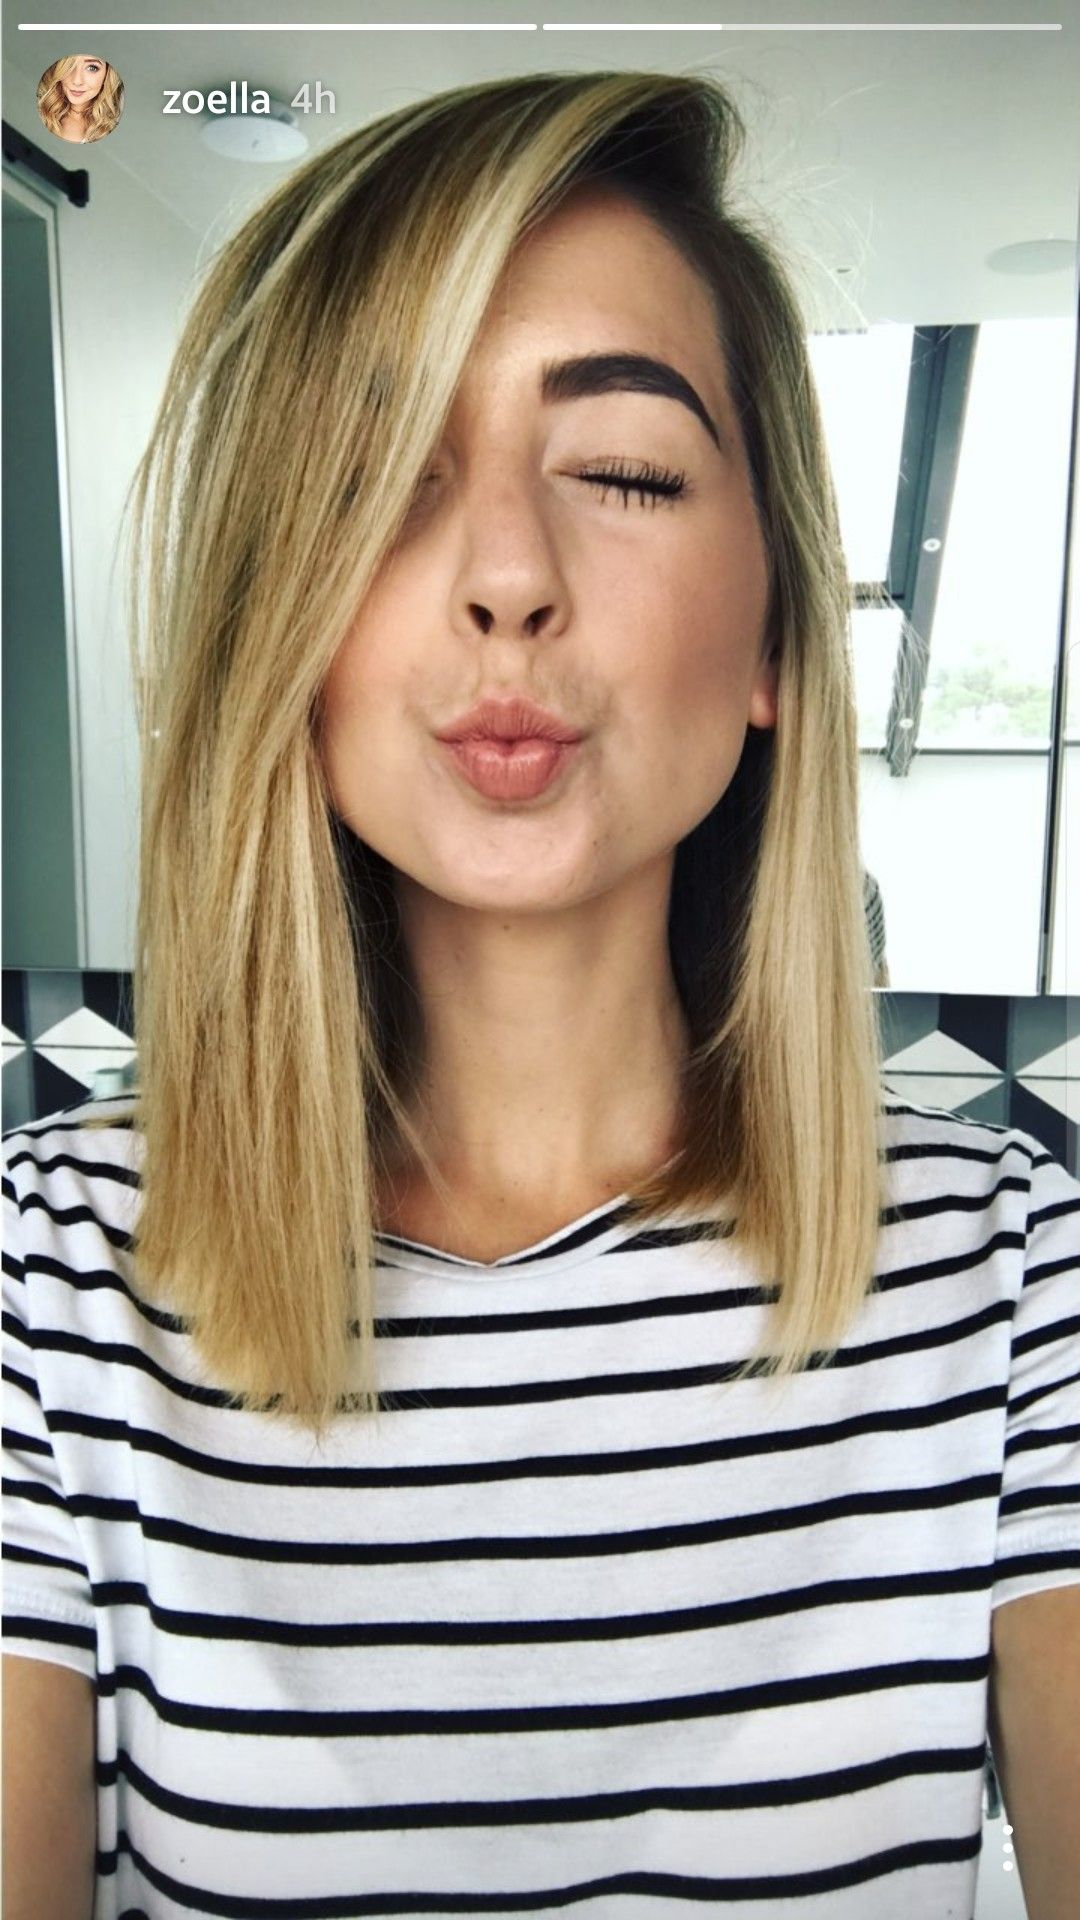 Pin By Anja Messy Wifey On Hairstyles Zoella Hair Hair Styles Zoella